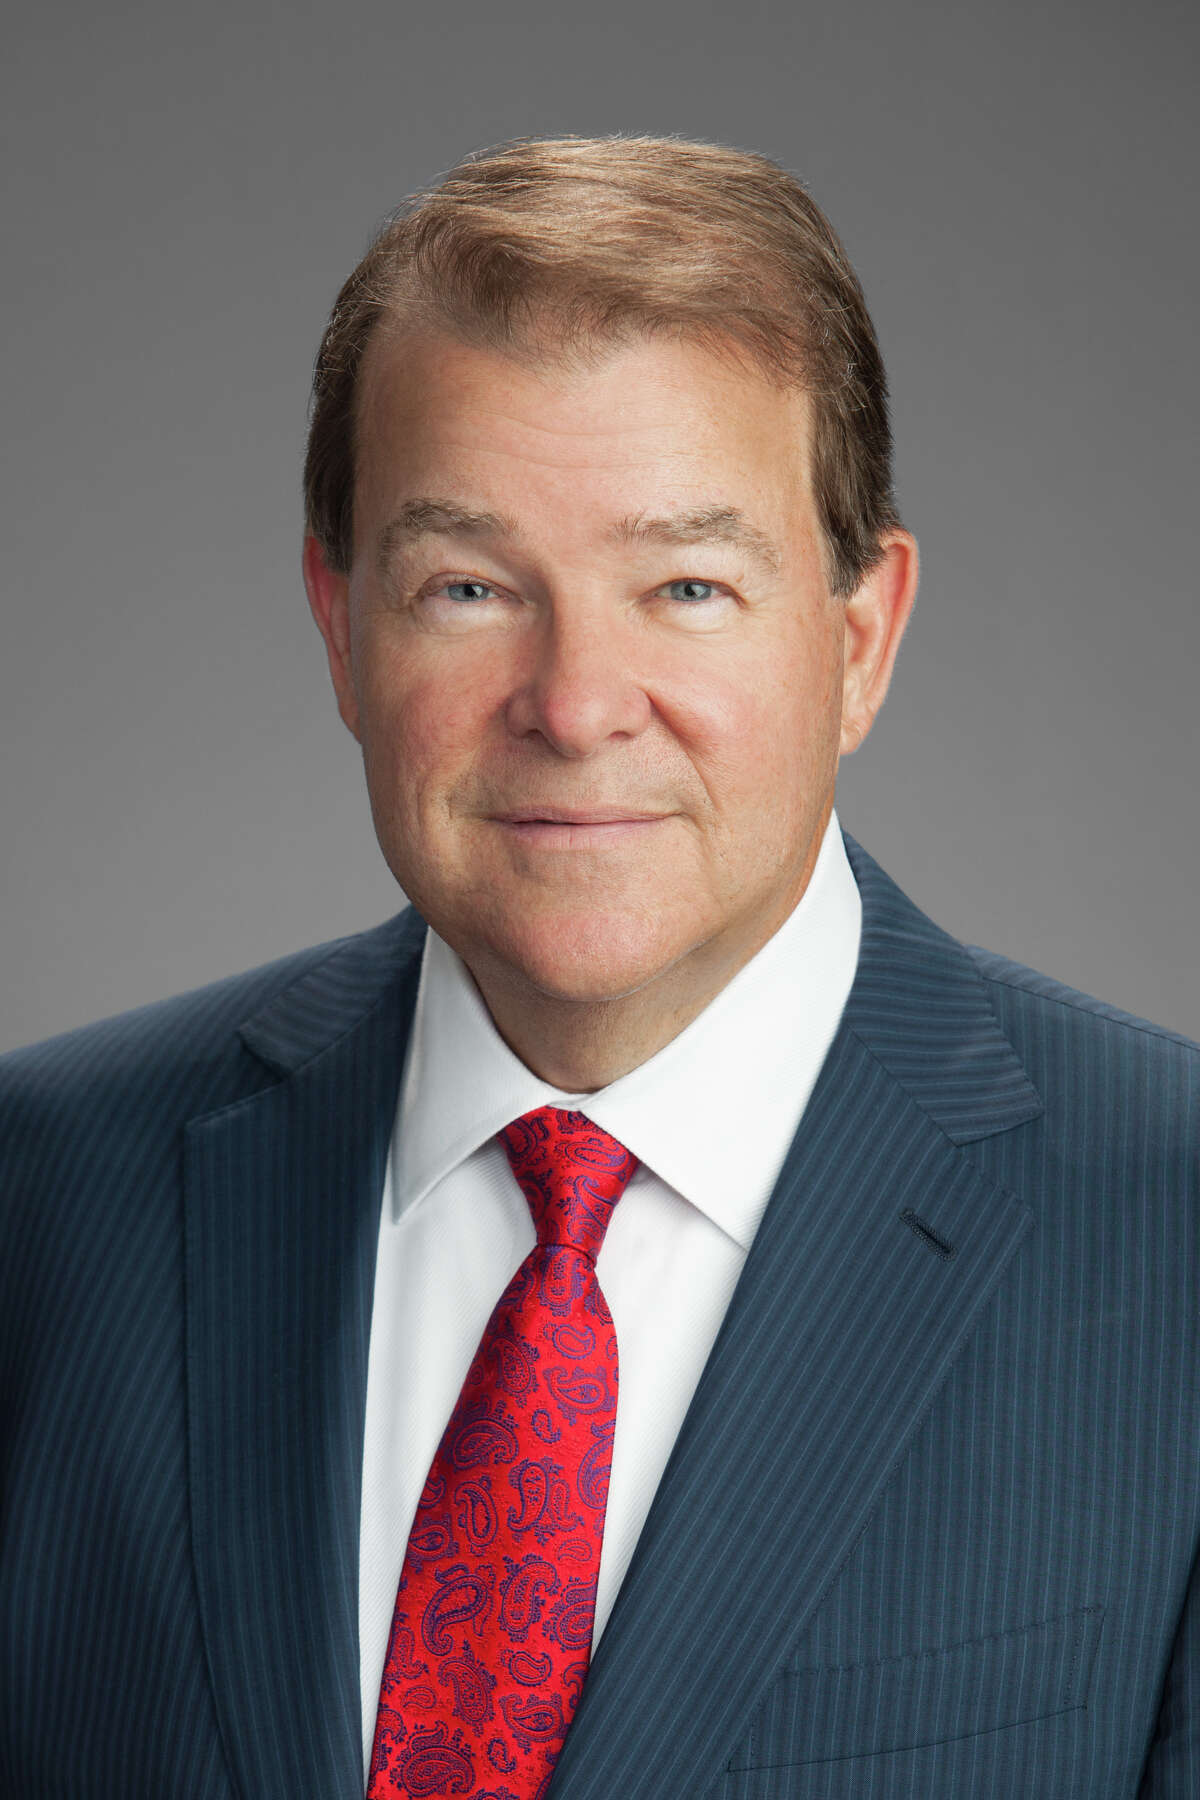 Robert W. Bourne has been named vice president, business development Â?- midstream and marketing, at Apache Corp.